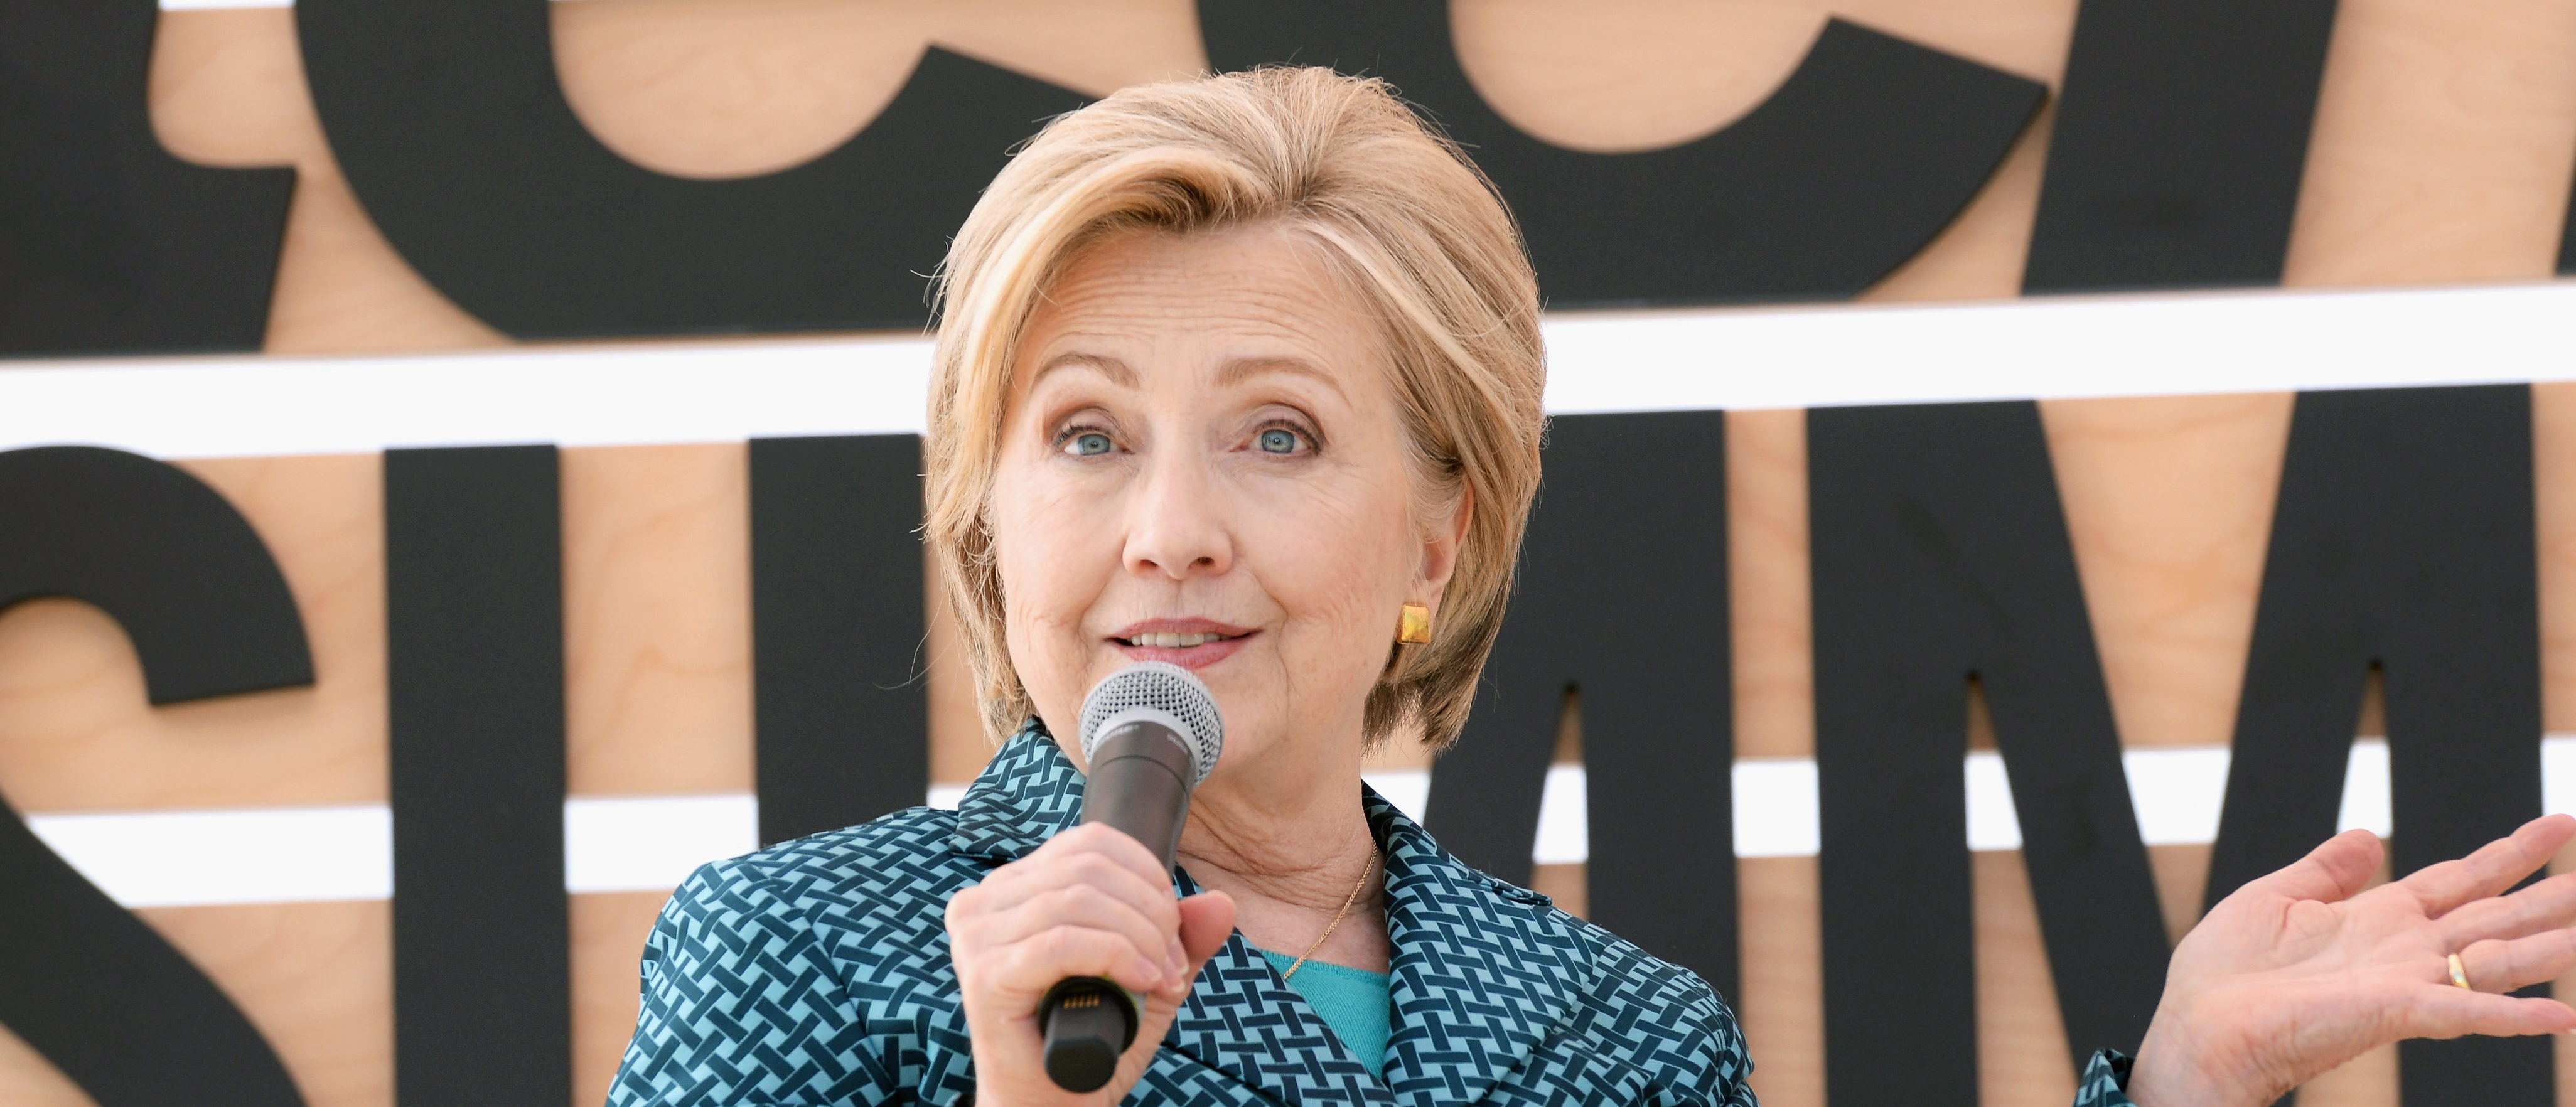 Hillary Clinton Claims There Have Been 'Over 230' School Shootings Since 2012 - She's Off By About 200